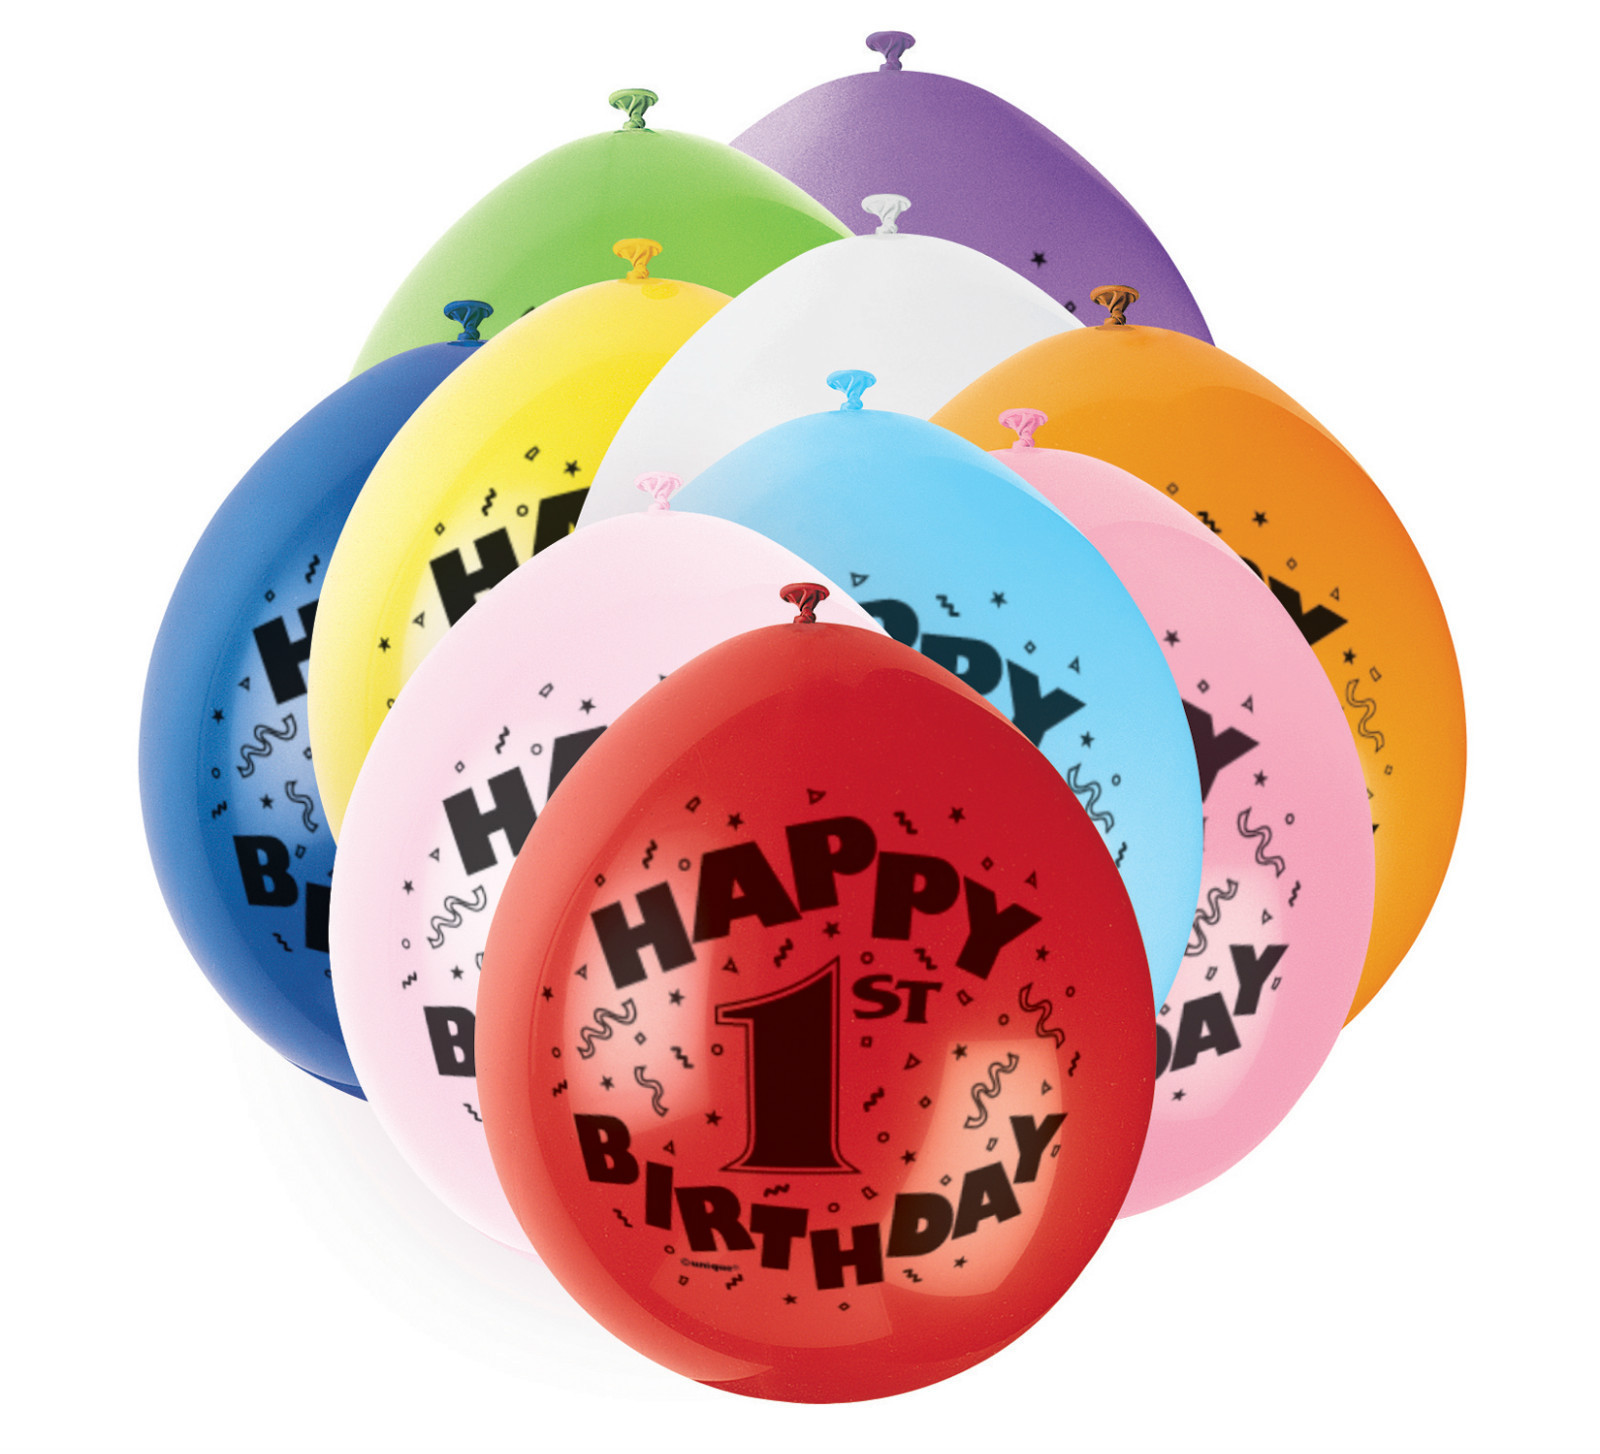 Age 1st Happy Birthday party balloons 10 pack